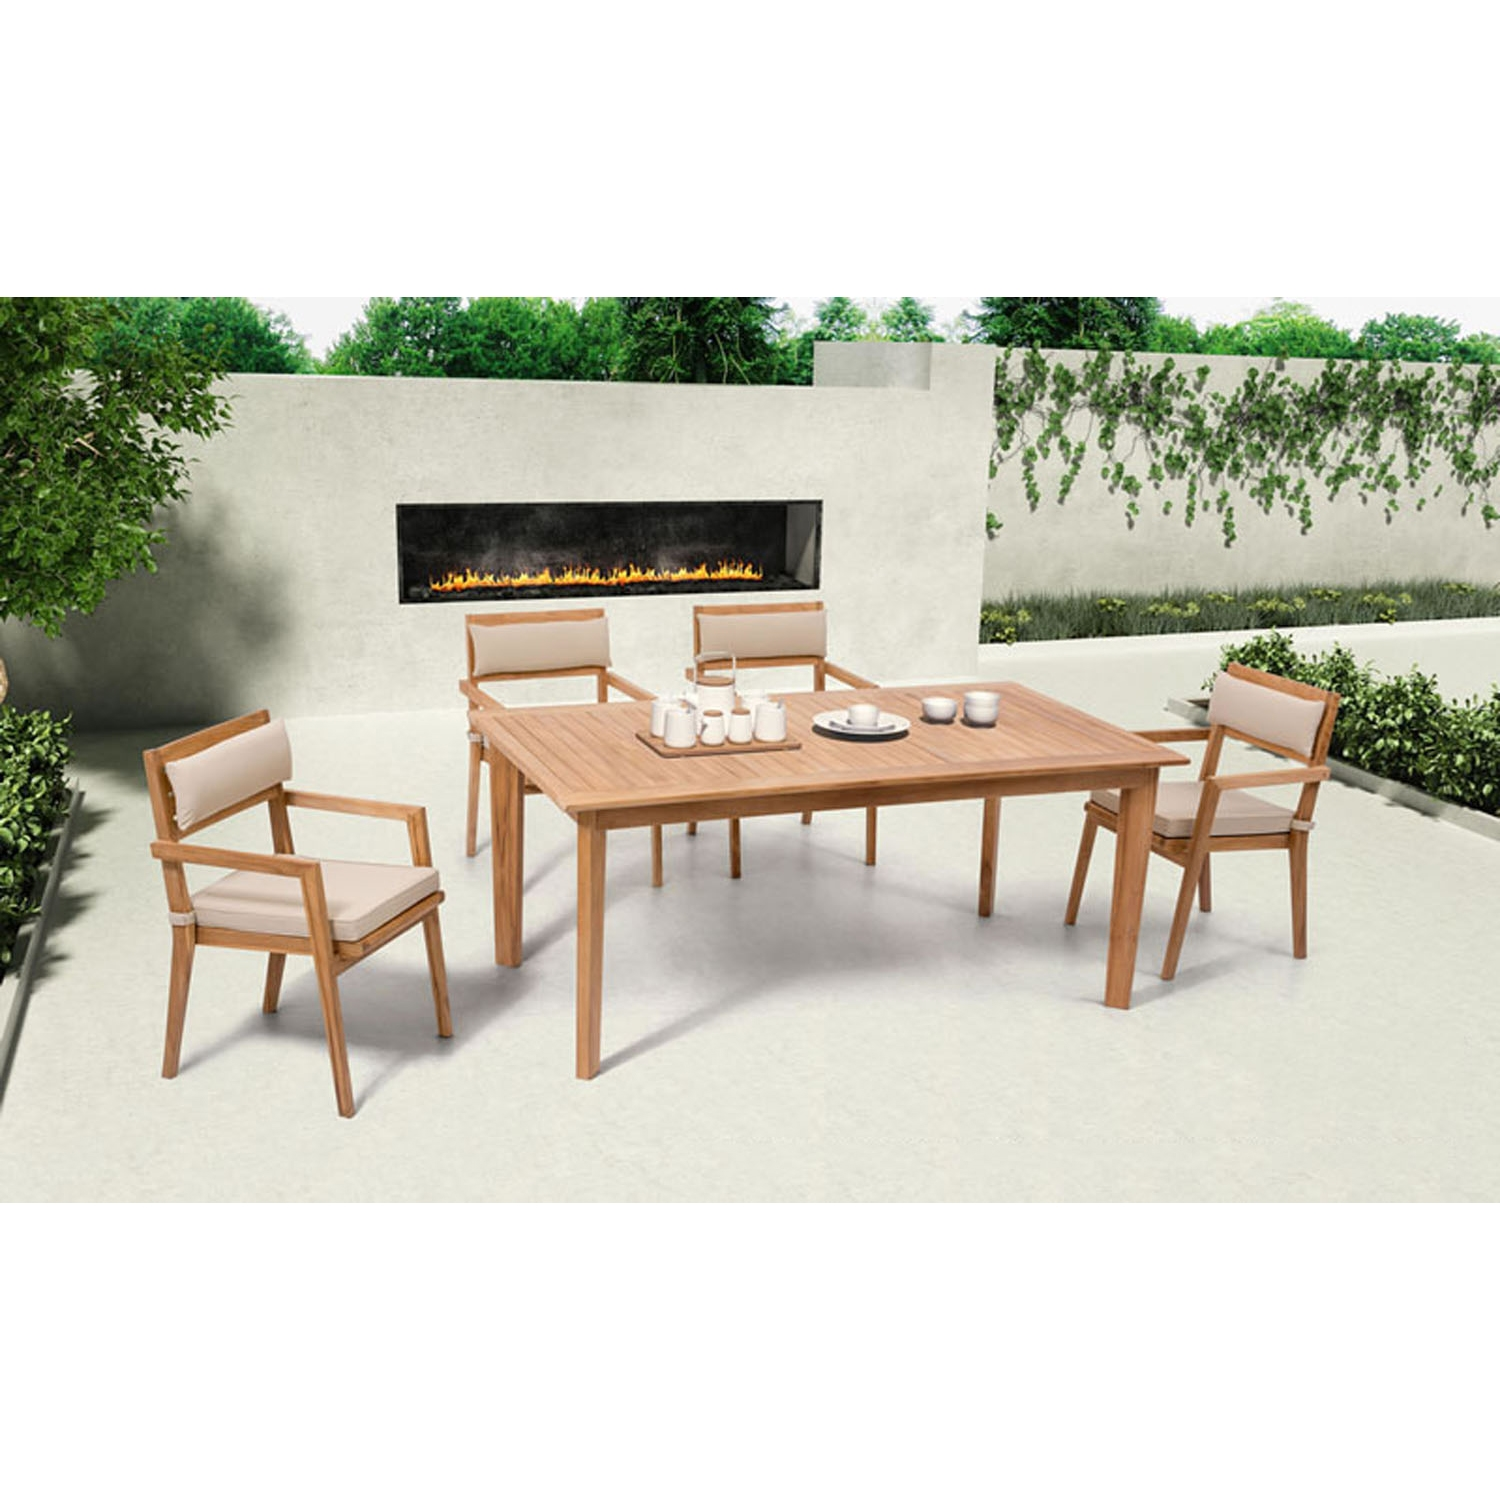 Nautical 5-Piece Dining Set - Natural - ZM-70355-NAUTICAL